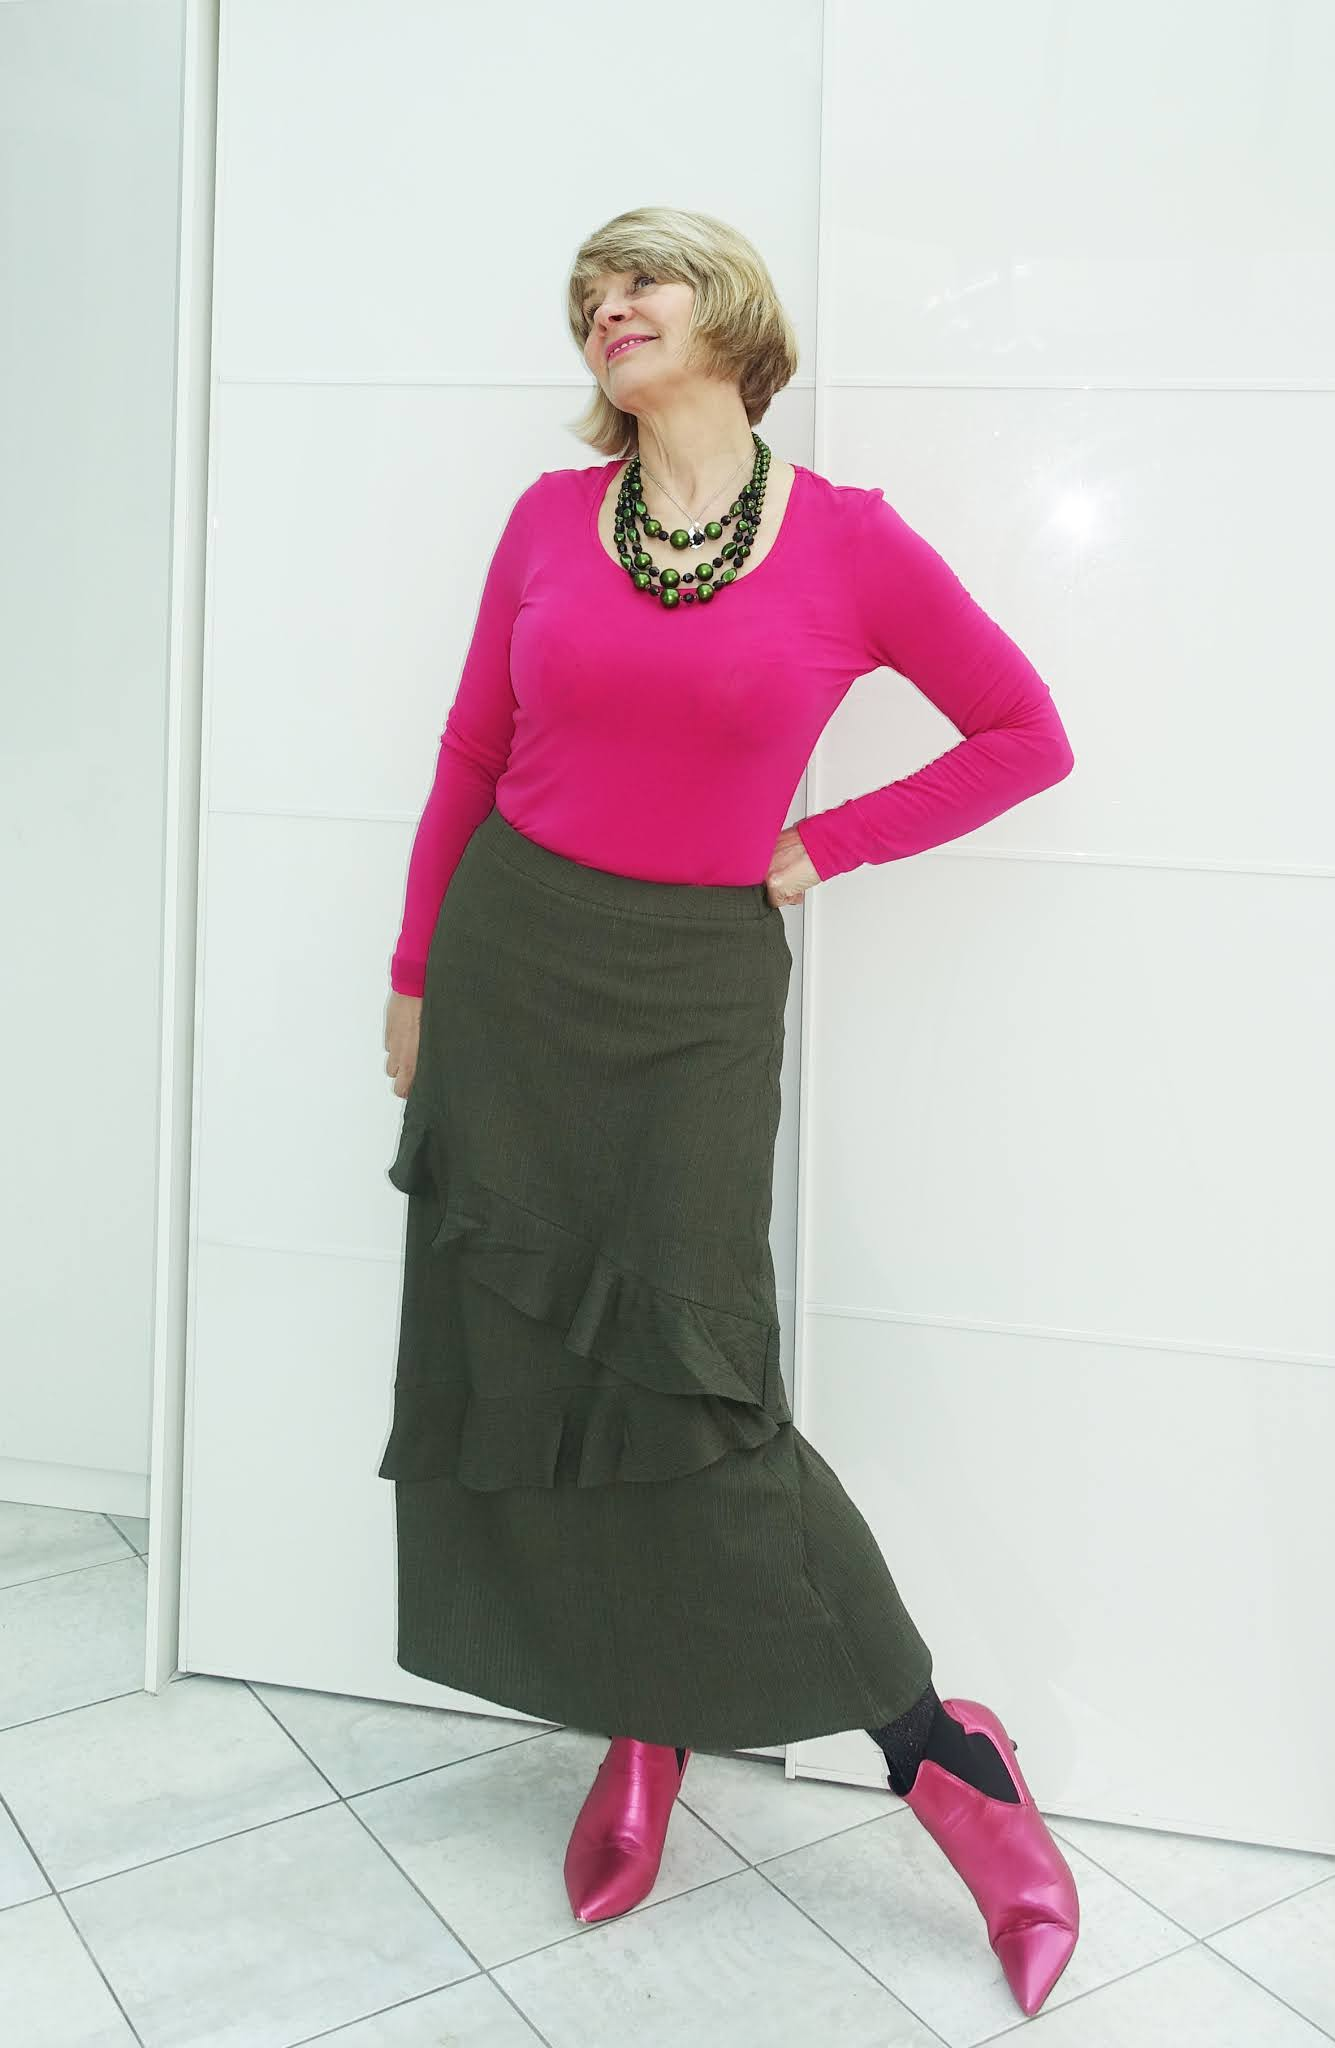 Gail Hanlon from over 50s style blog in khaki green tiered midi skirt and bright pink